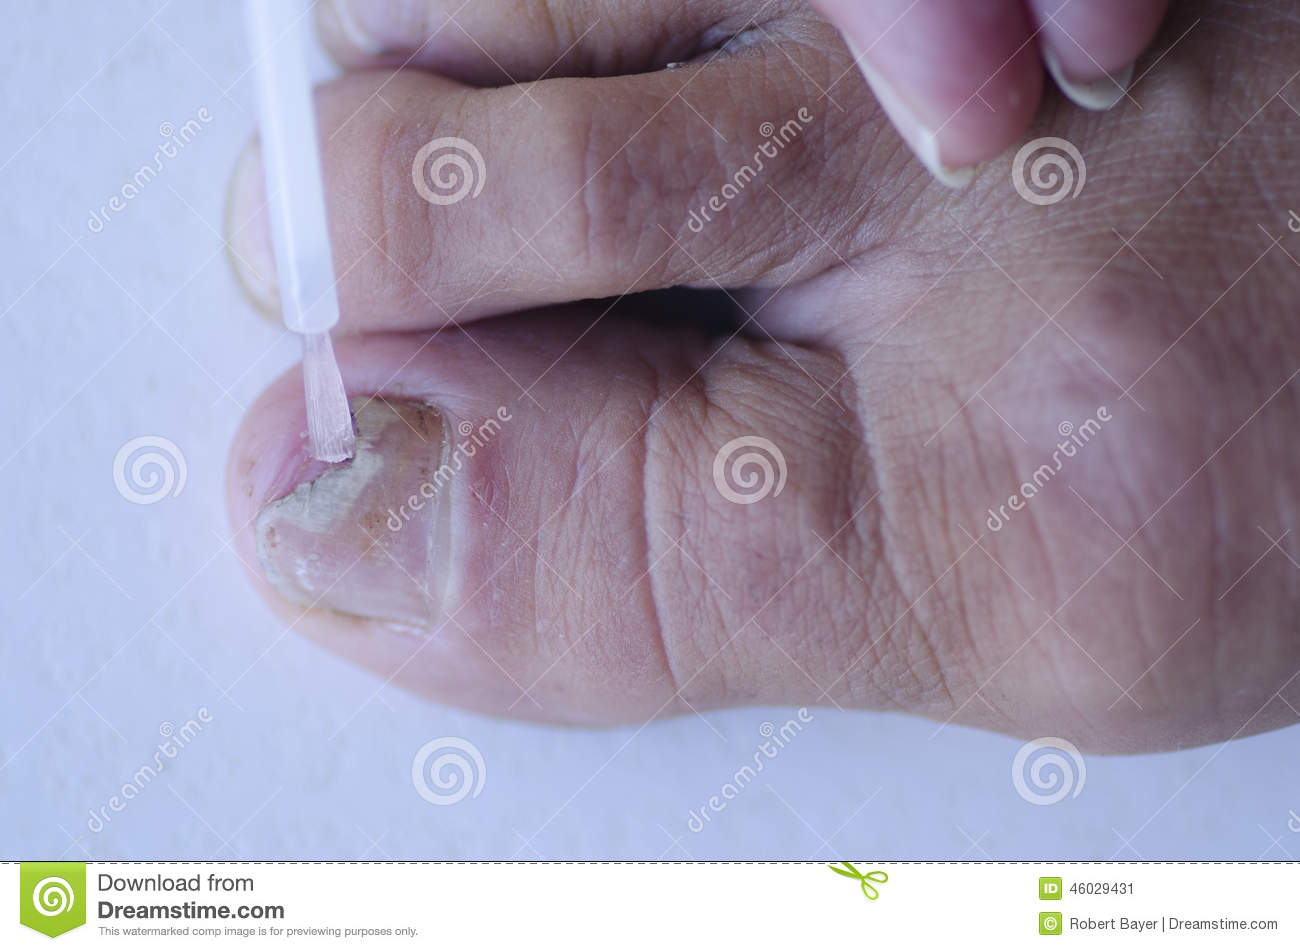 Fungus Infection At Toenail Medical Treatment Stock Image - Image of ...